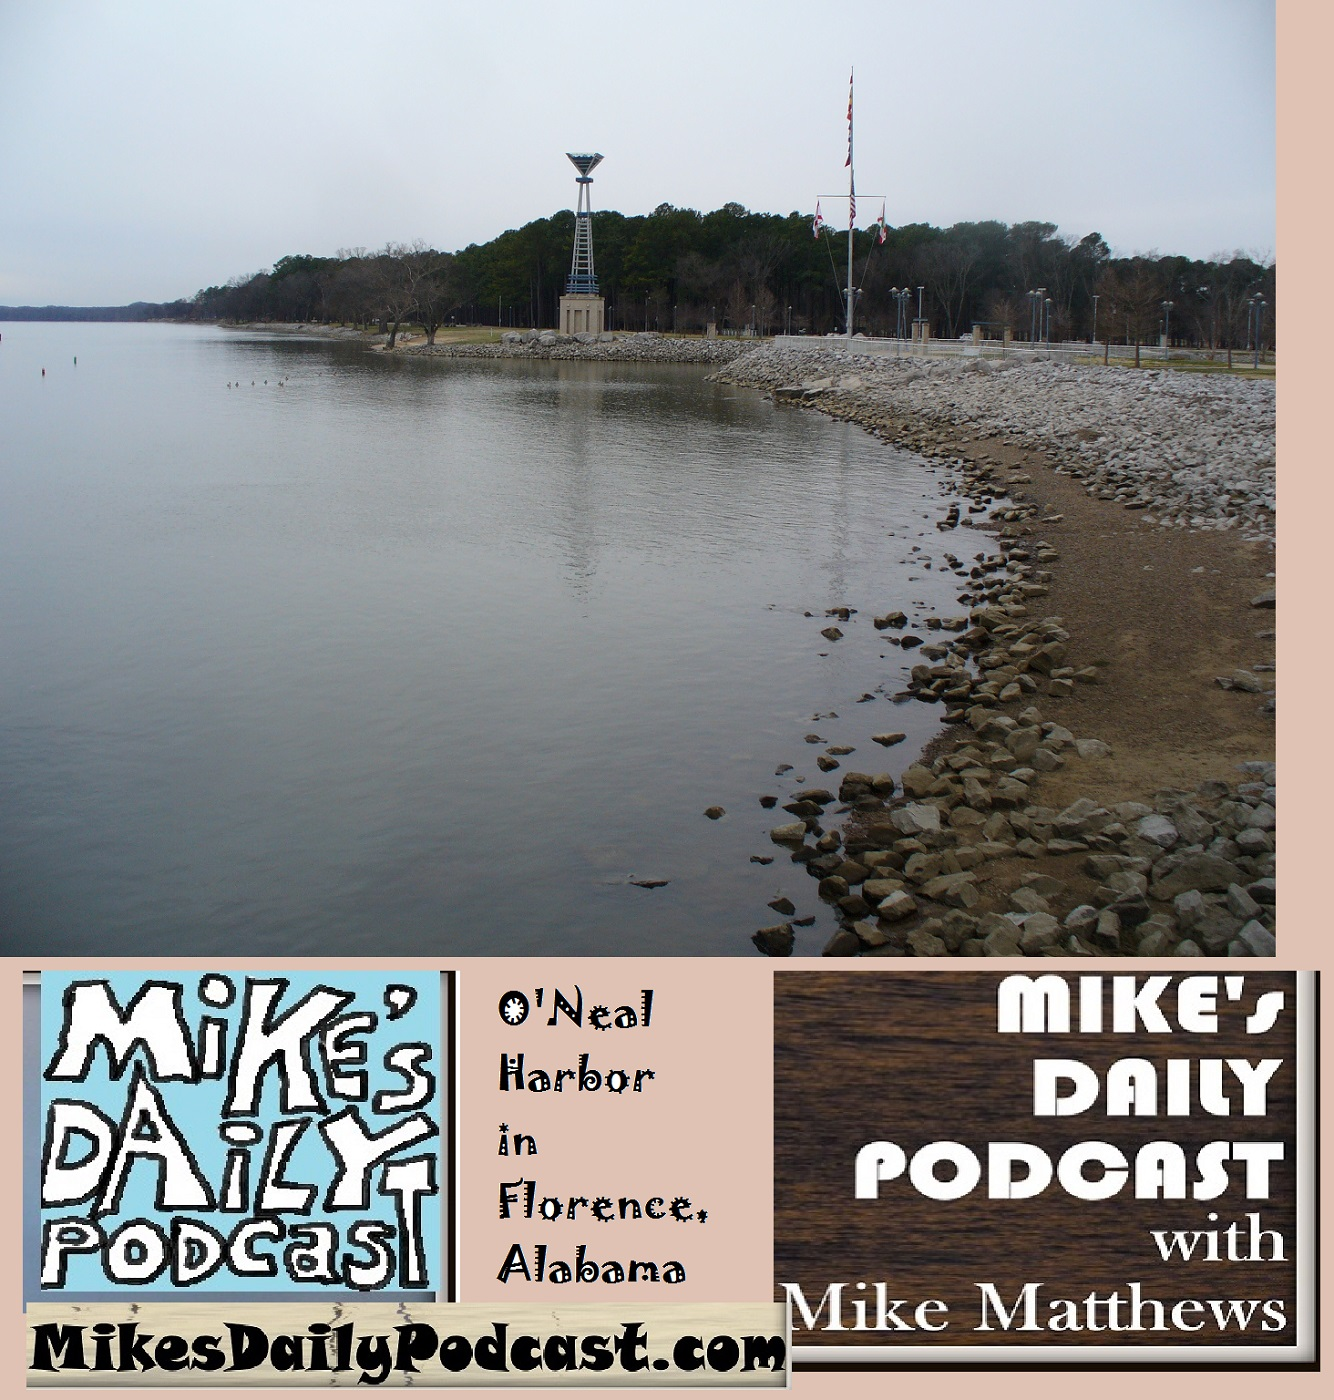 MIKEs DAILY PODCAST 1073 O Neal Harbor Florence Alabama